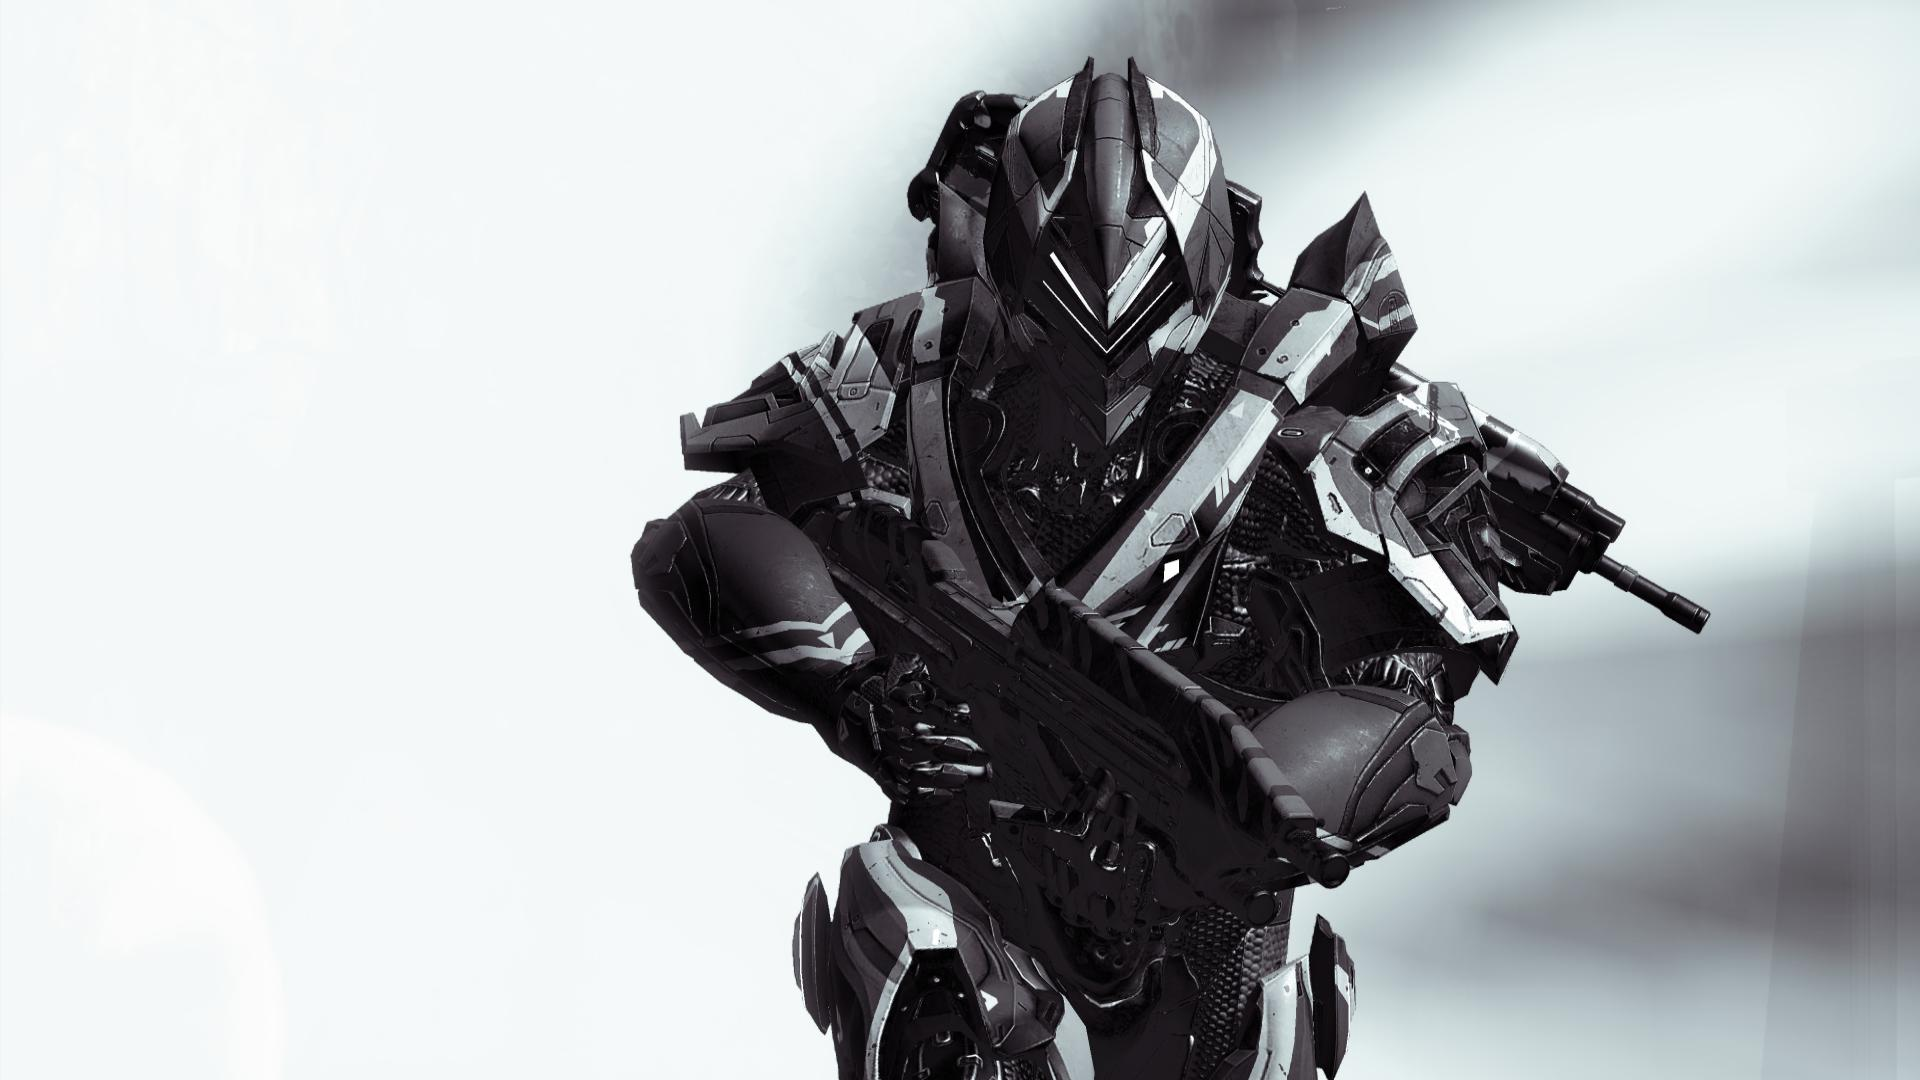 36 Best HD Awesome Halo Wallpapers feelgrPH 1920x1080